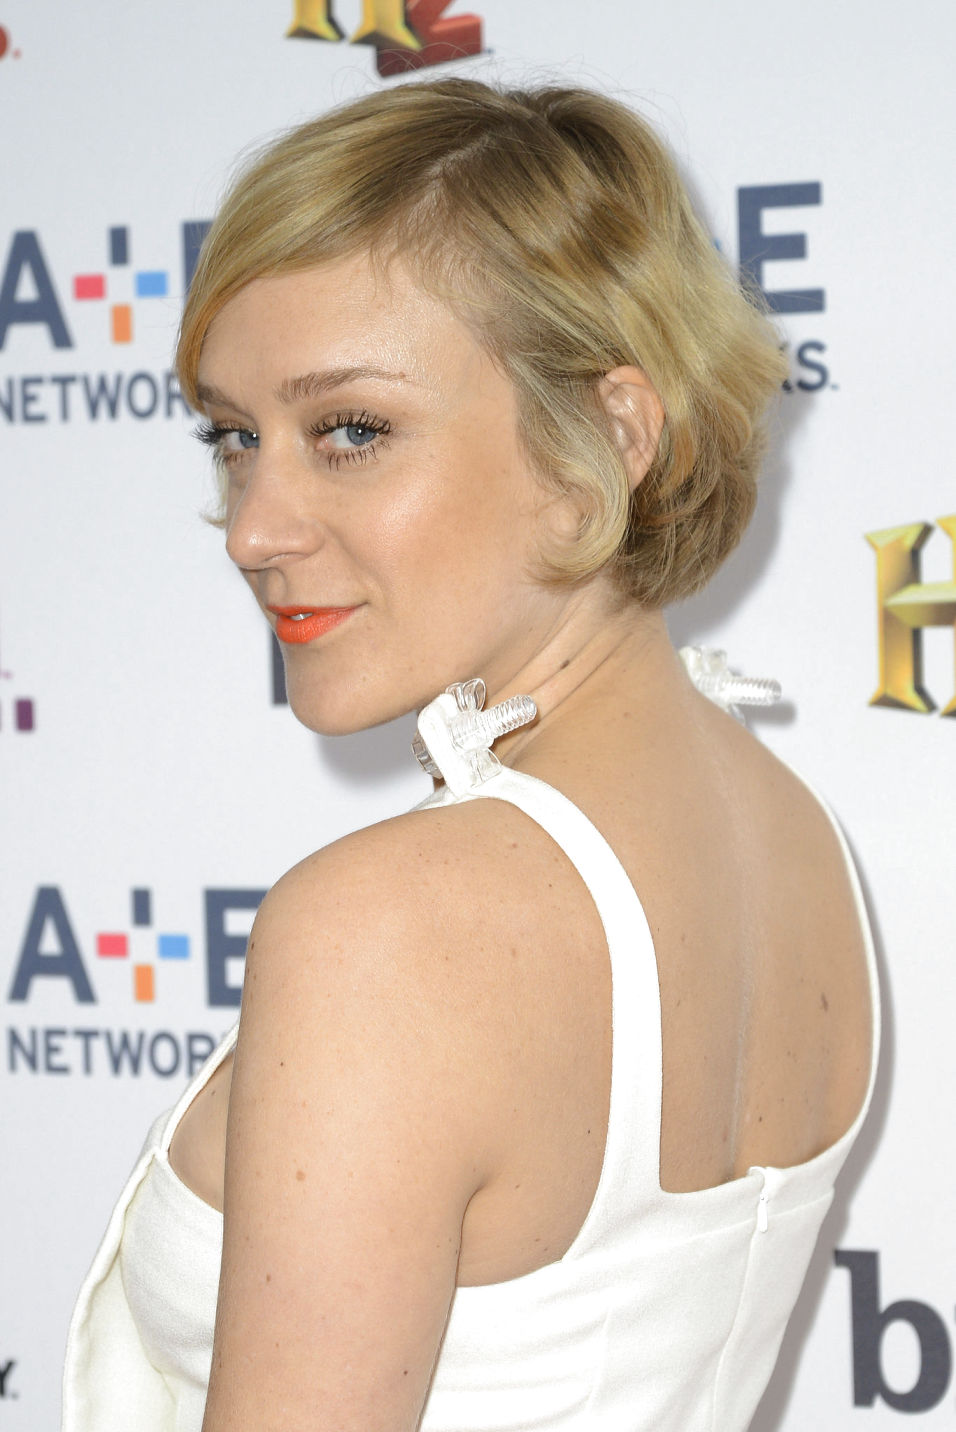 chloe sevigny new tv show